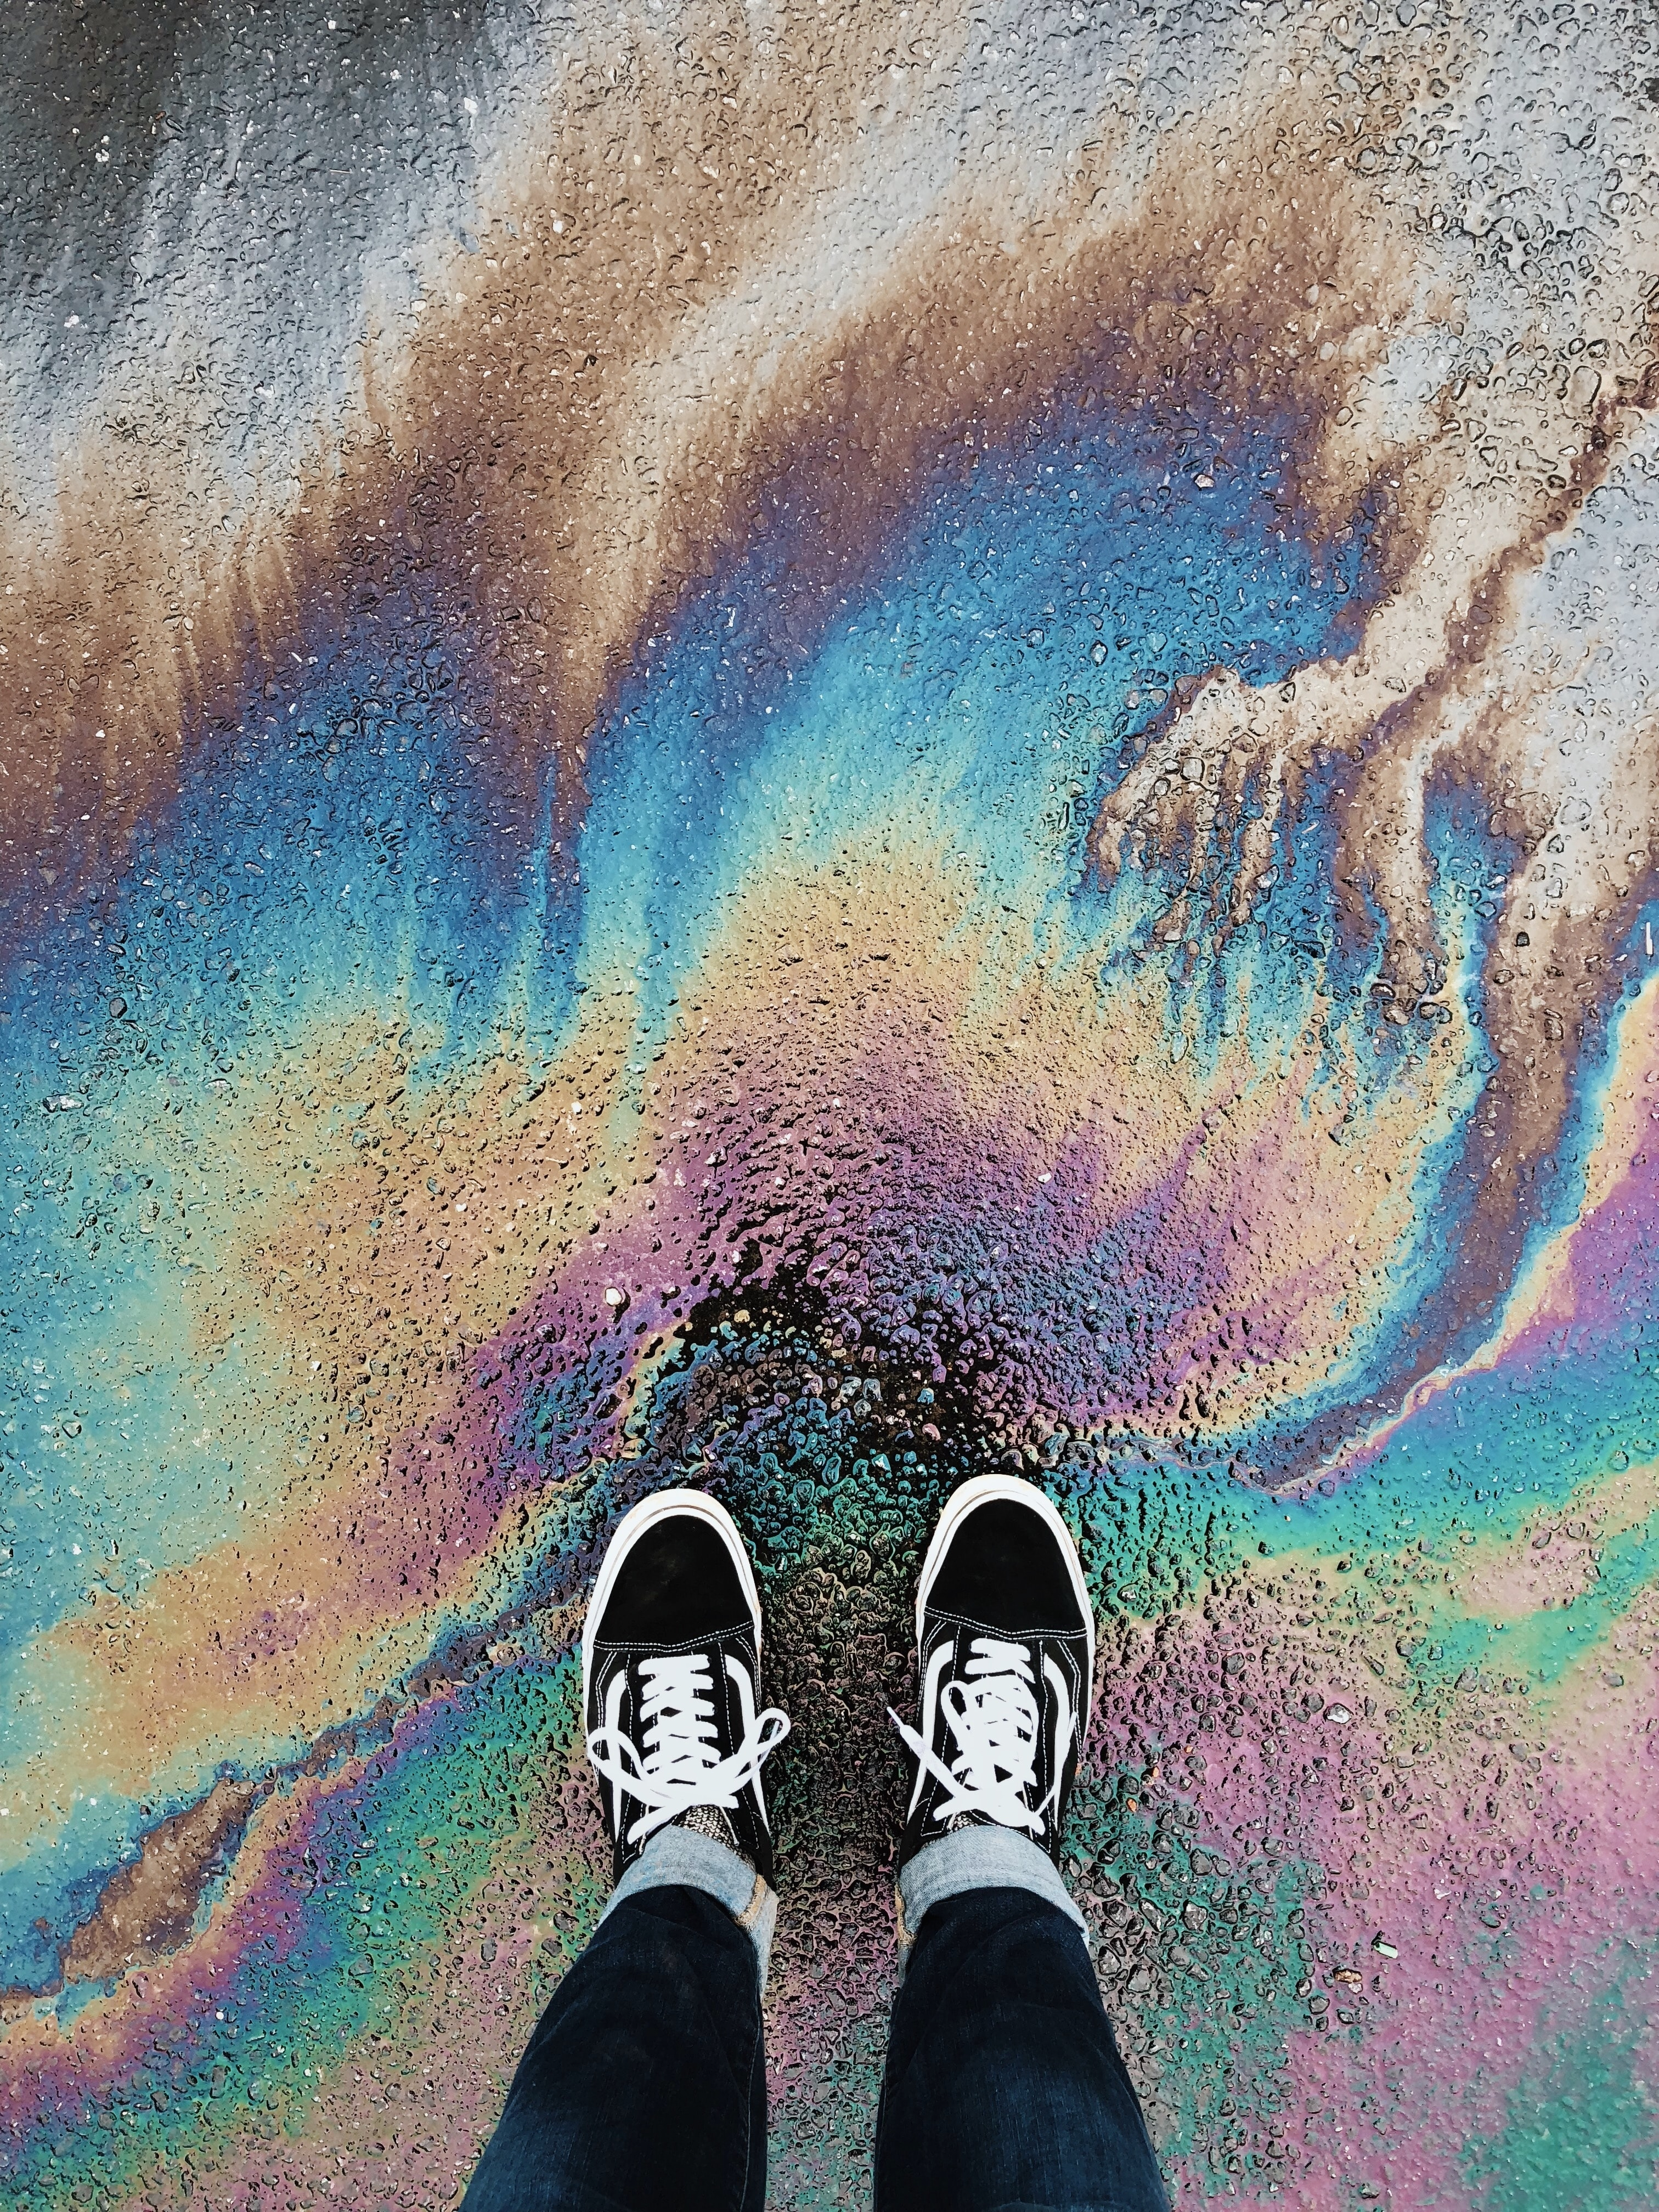 person standing on oil spilled surface